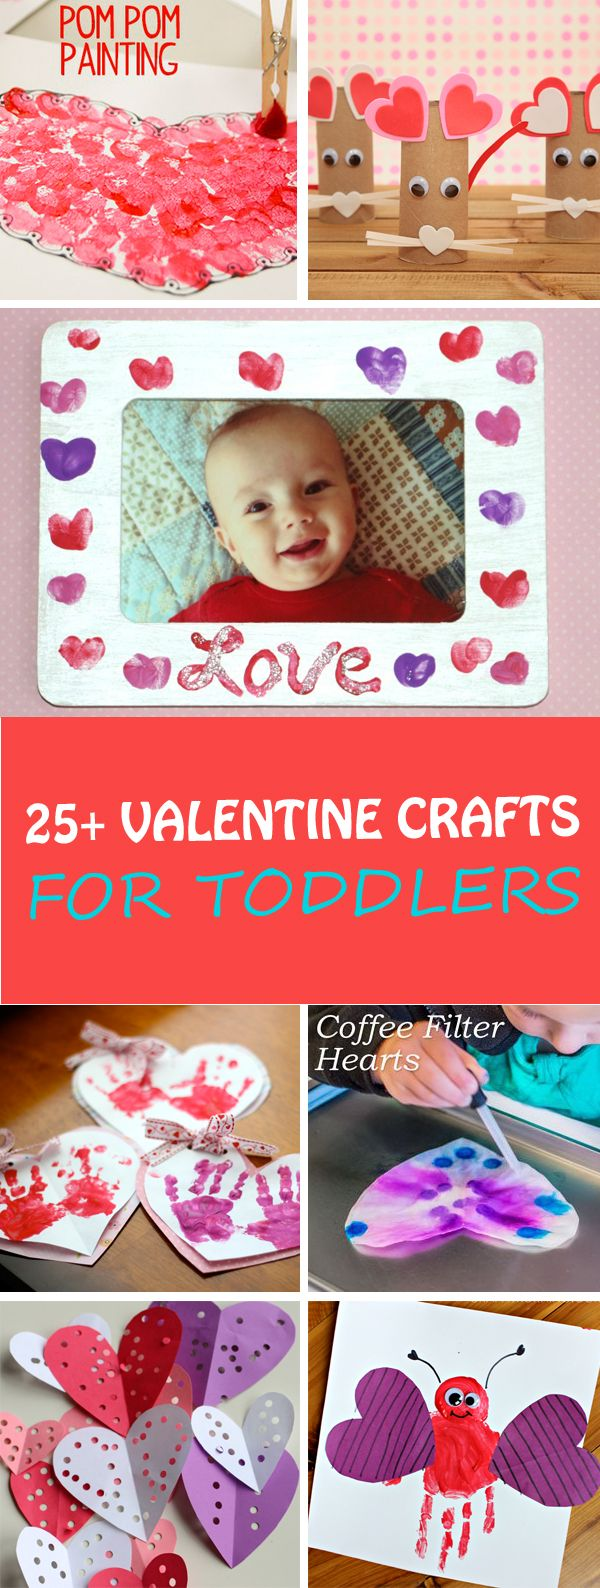 Easy Valentine crafts for toddlers: fingerprint frame, heart robots, heart garlands, coffee filter hearts, pom pom heart painting, tissue paper heart wreath, footprint love bug and more. Great also for preschoolers. | at Non-Toy Gifts